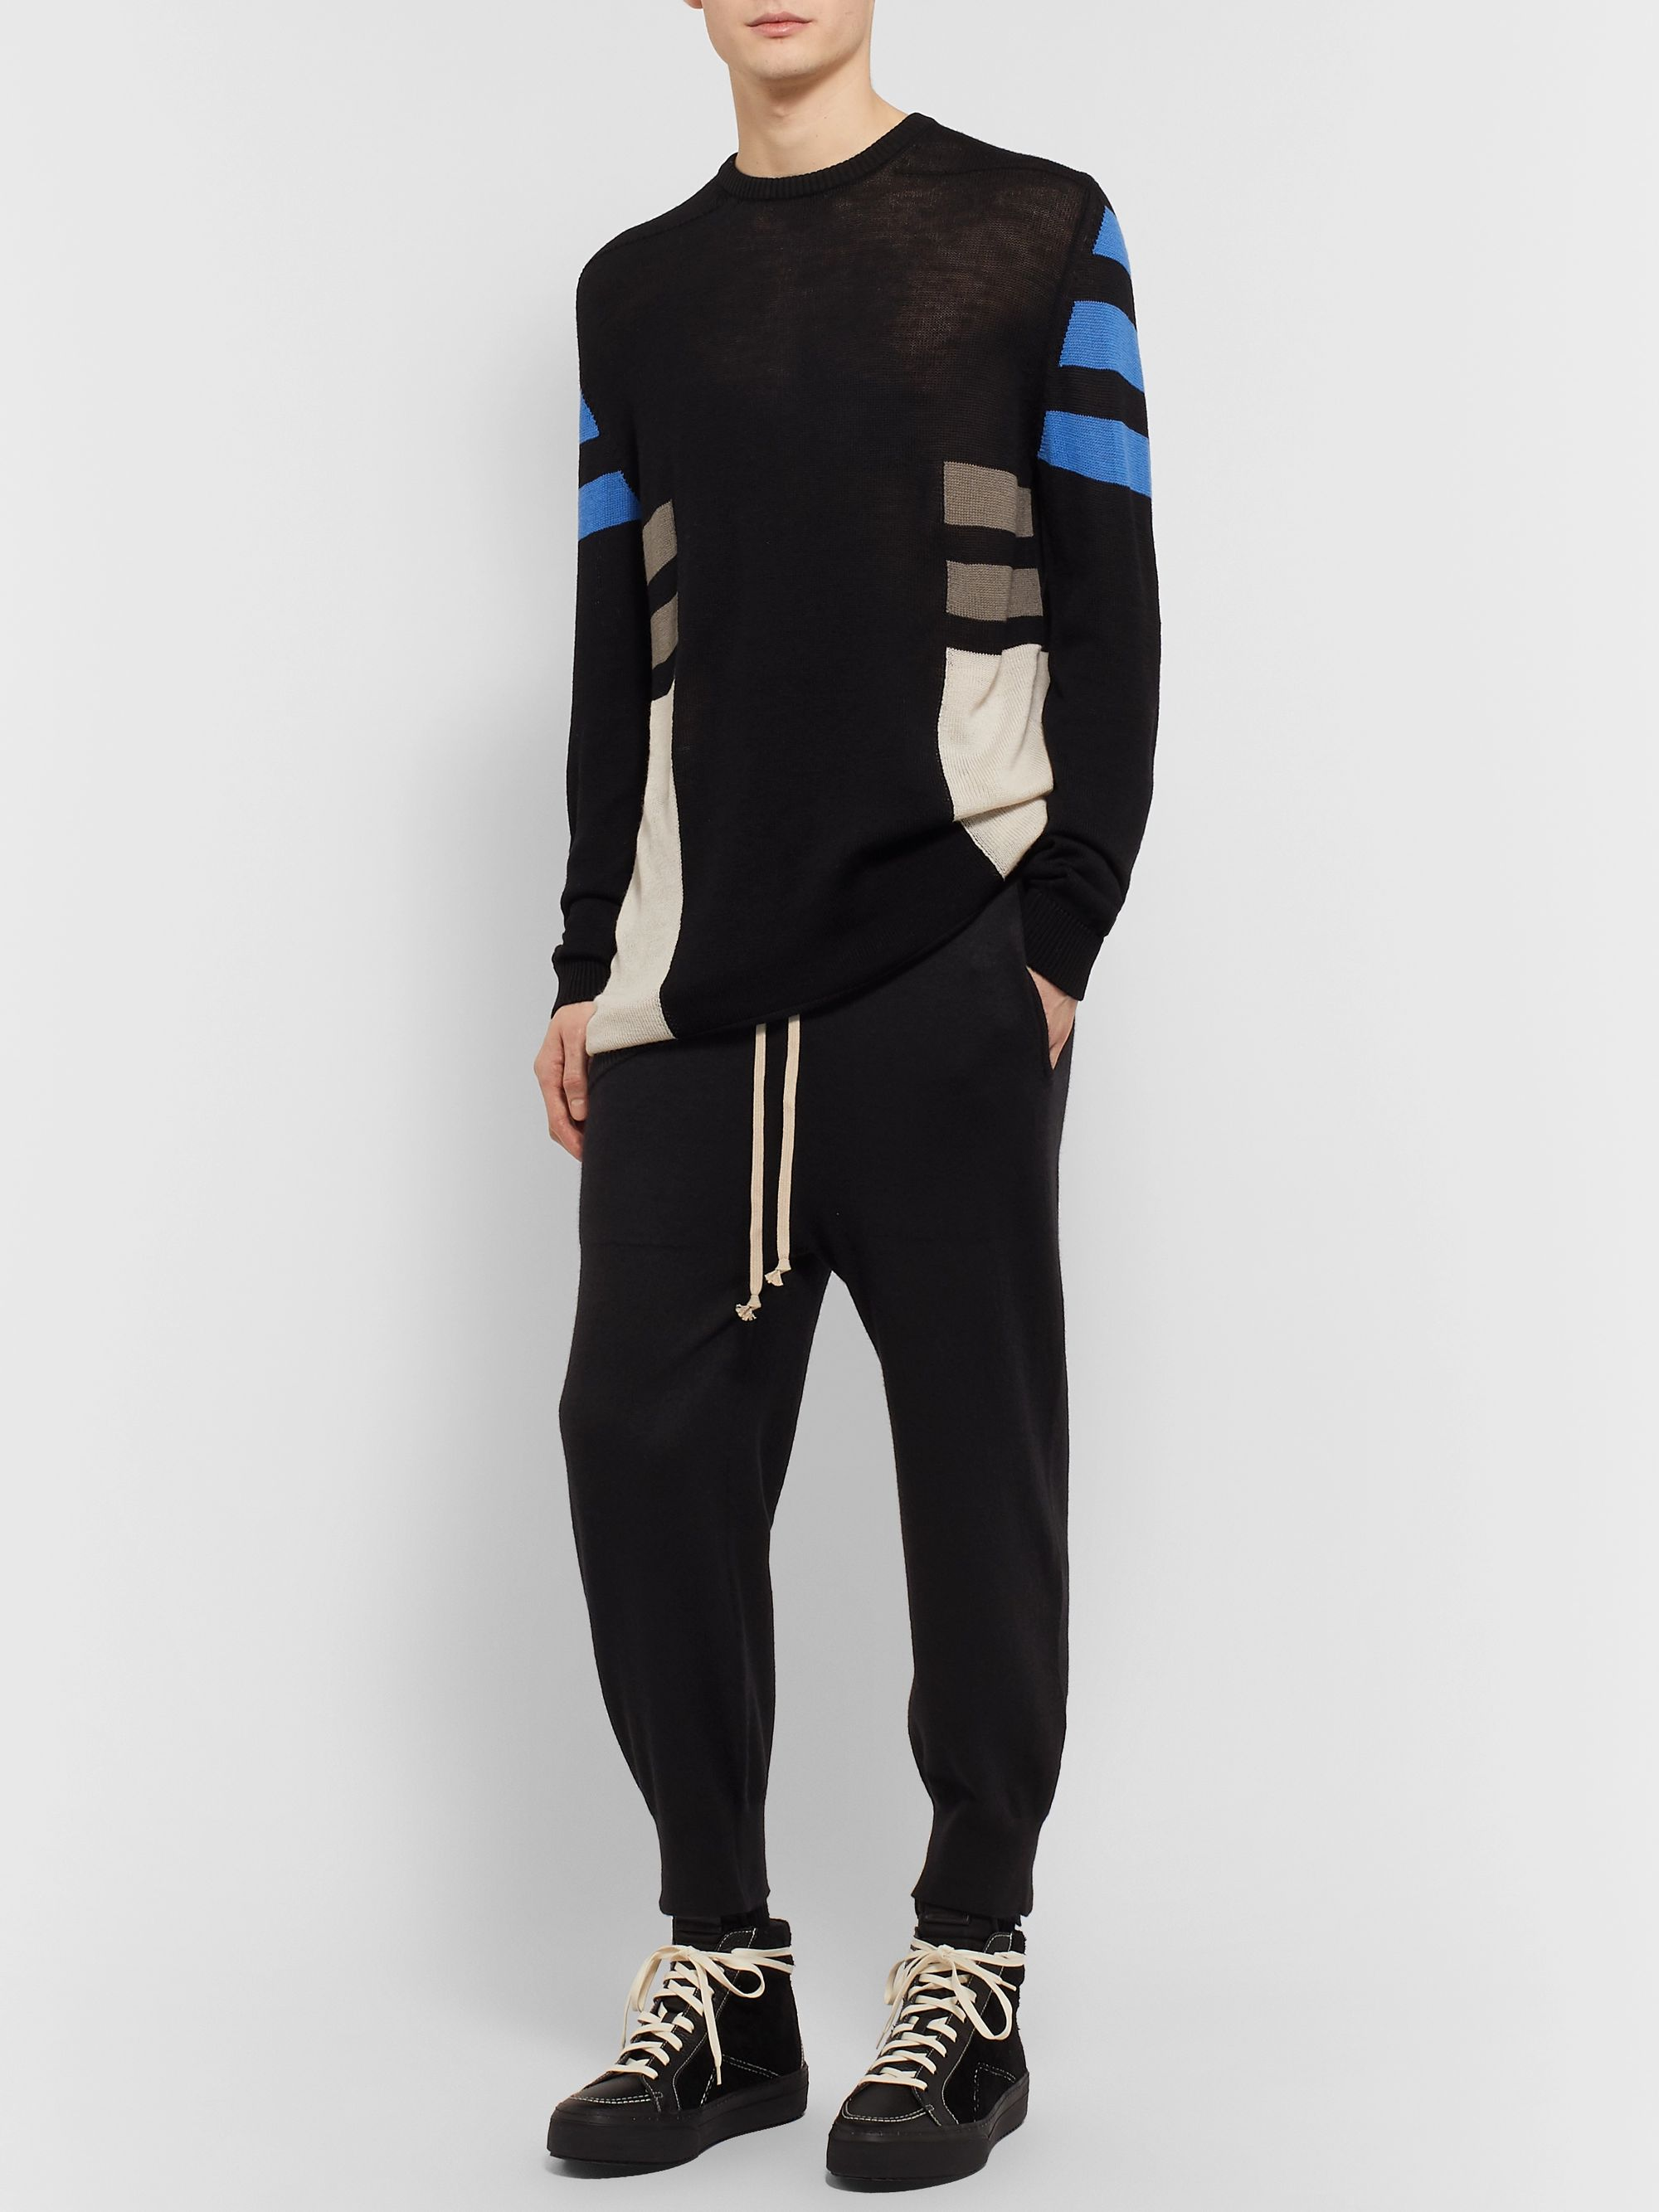 RICK OWENS Slim-Fit Tapered Cropped Boiled Cashmere Sweatpants